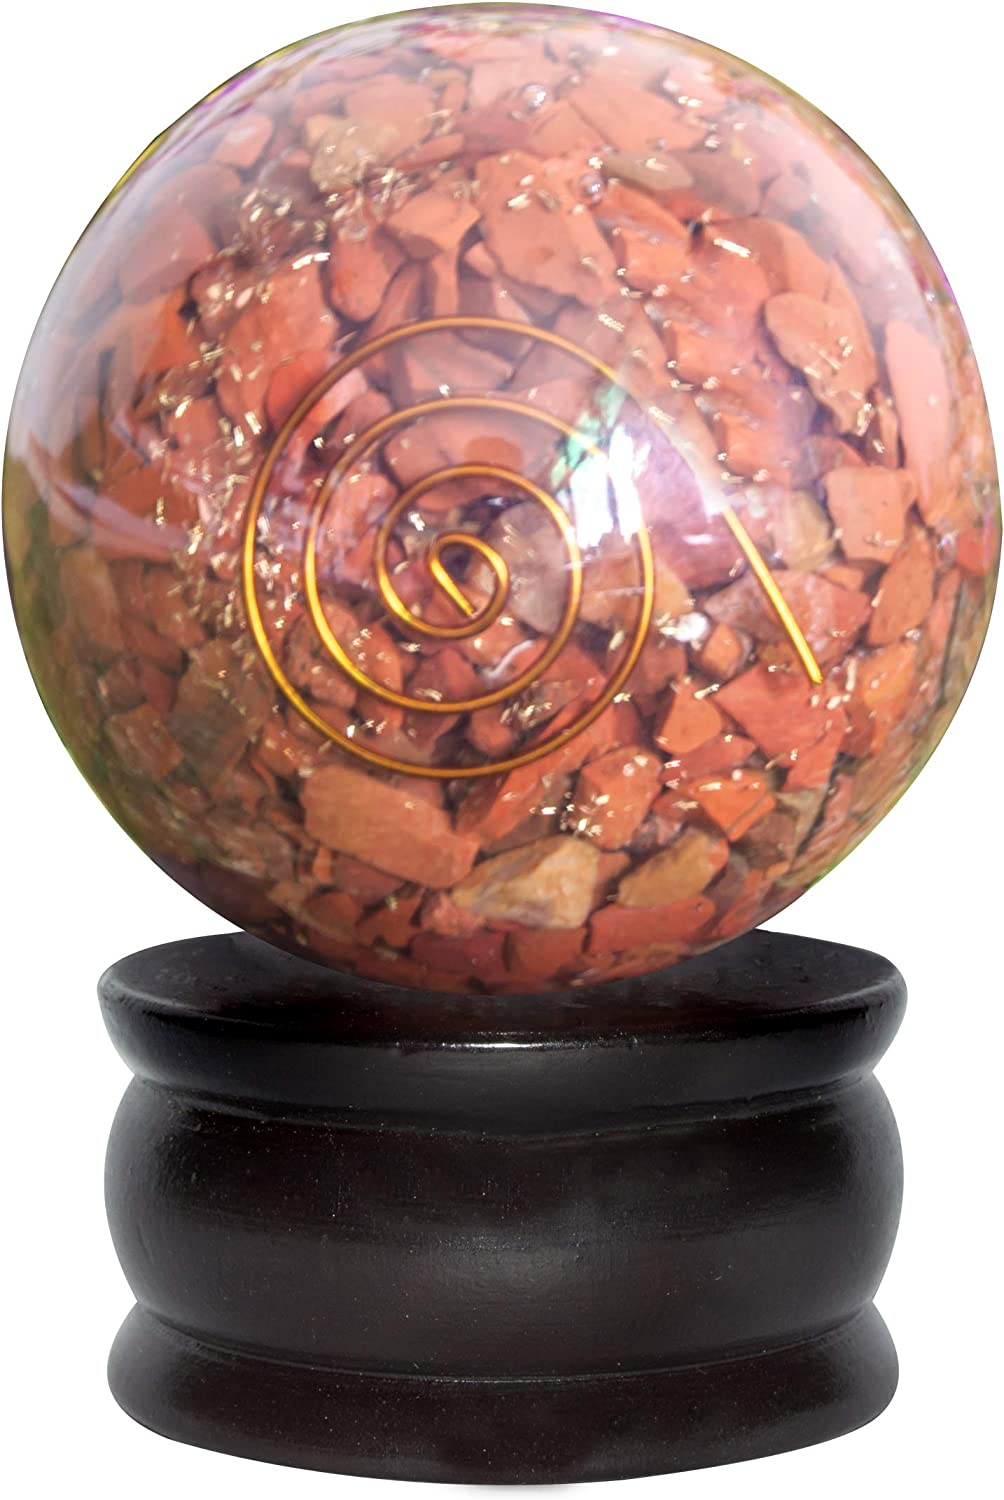 YATHABI Red Jasper Orgone Ball for Attracting Positive Energies Crystal Healing Chakra Balancing Spiritual Gift & Enhance Home Decor Size: 50-55 mm Approx